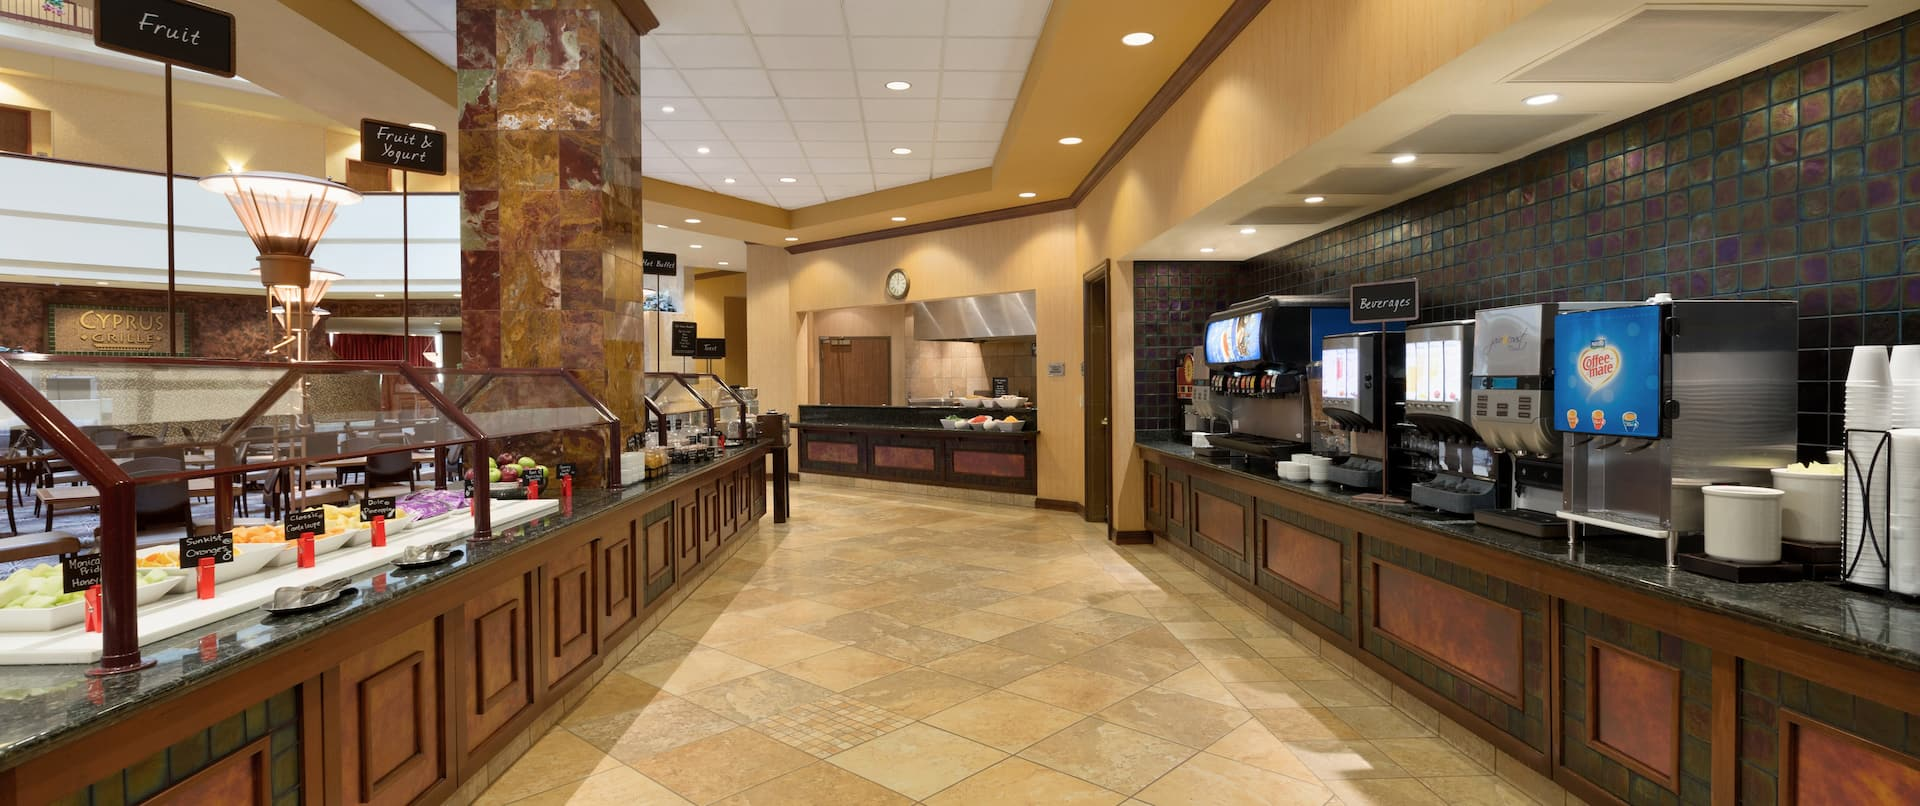 Breakfast Buffet Area And Beverage Station